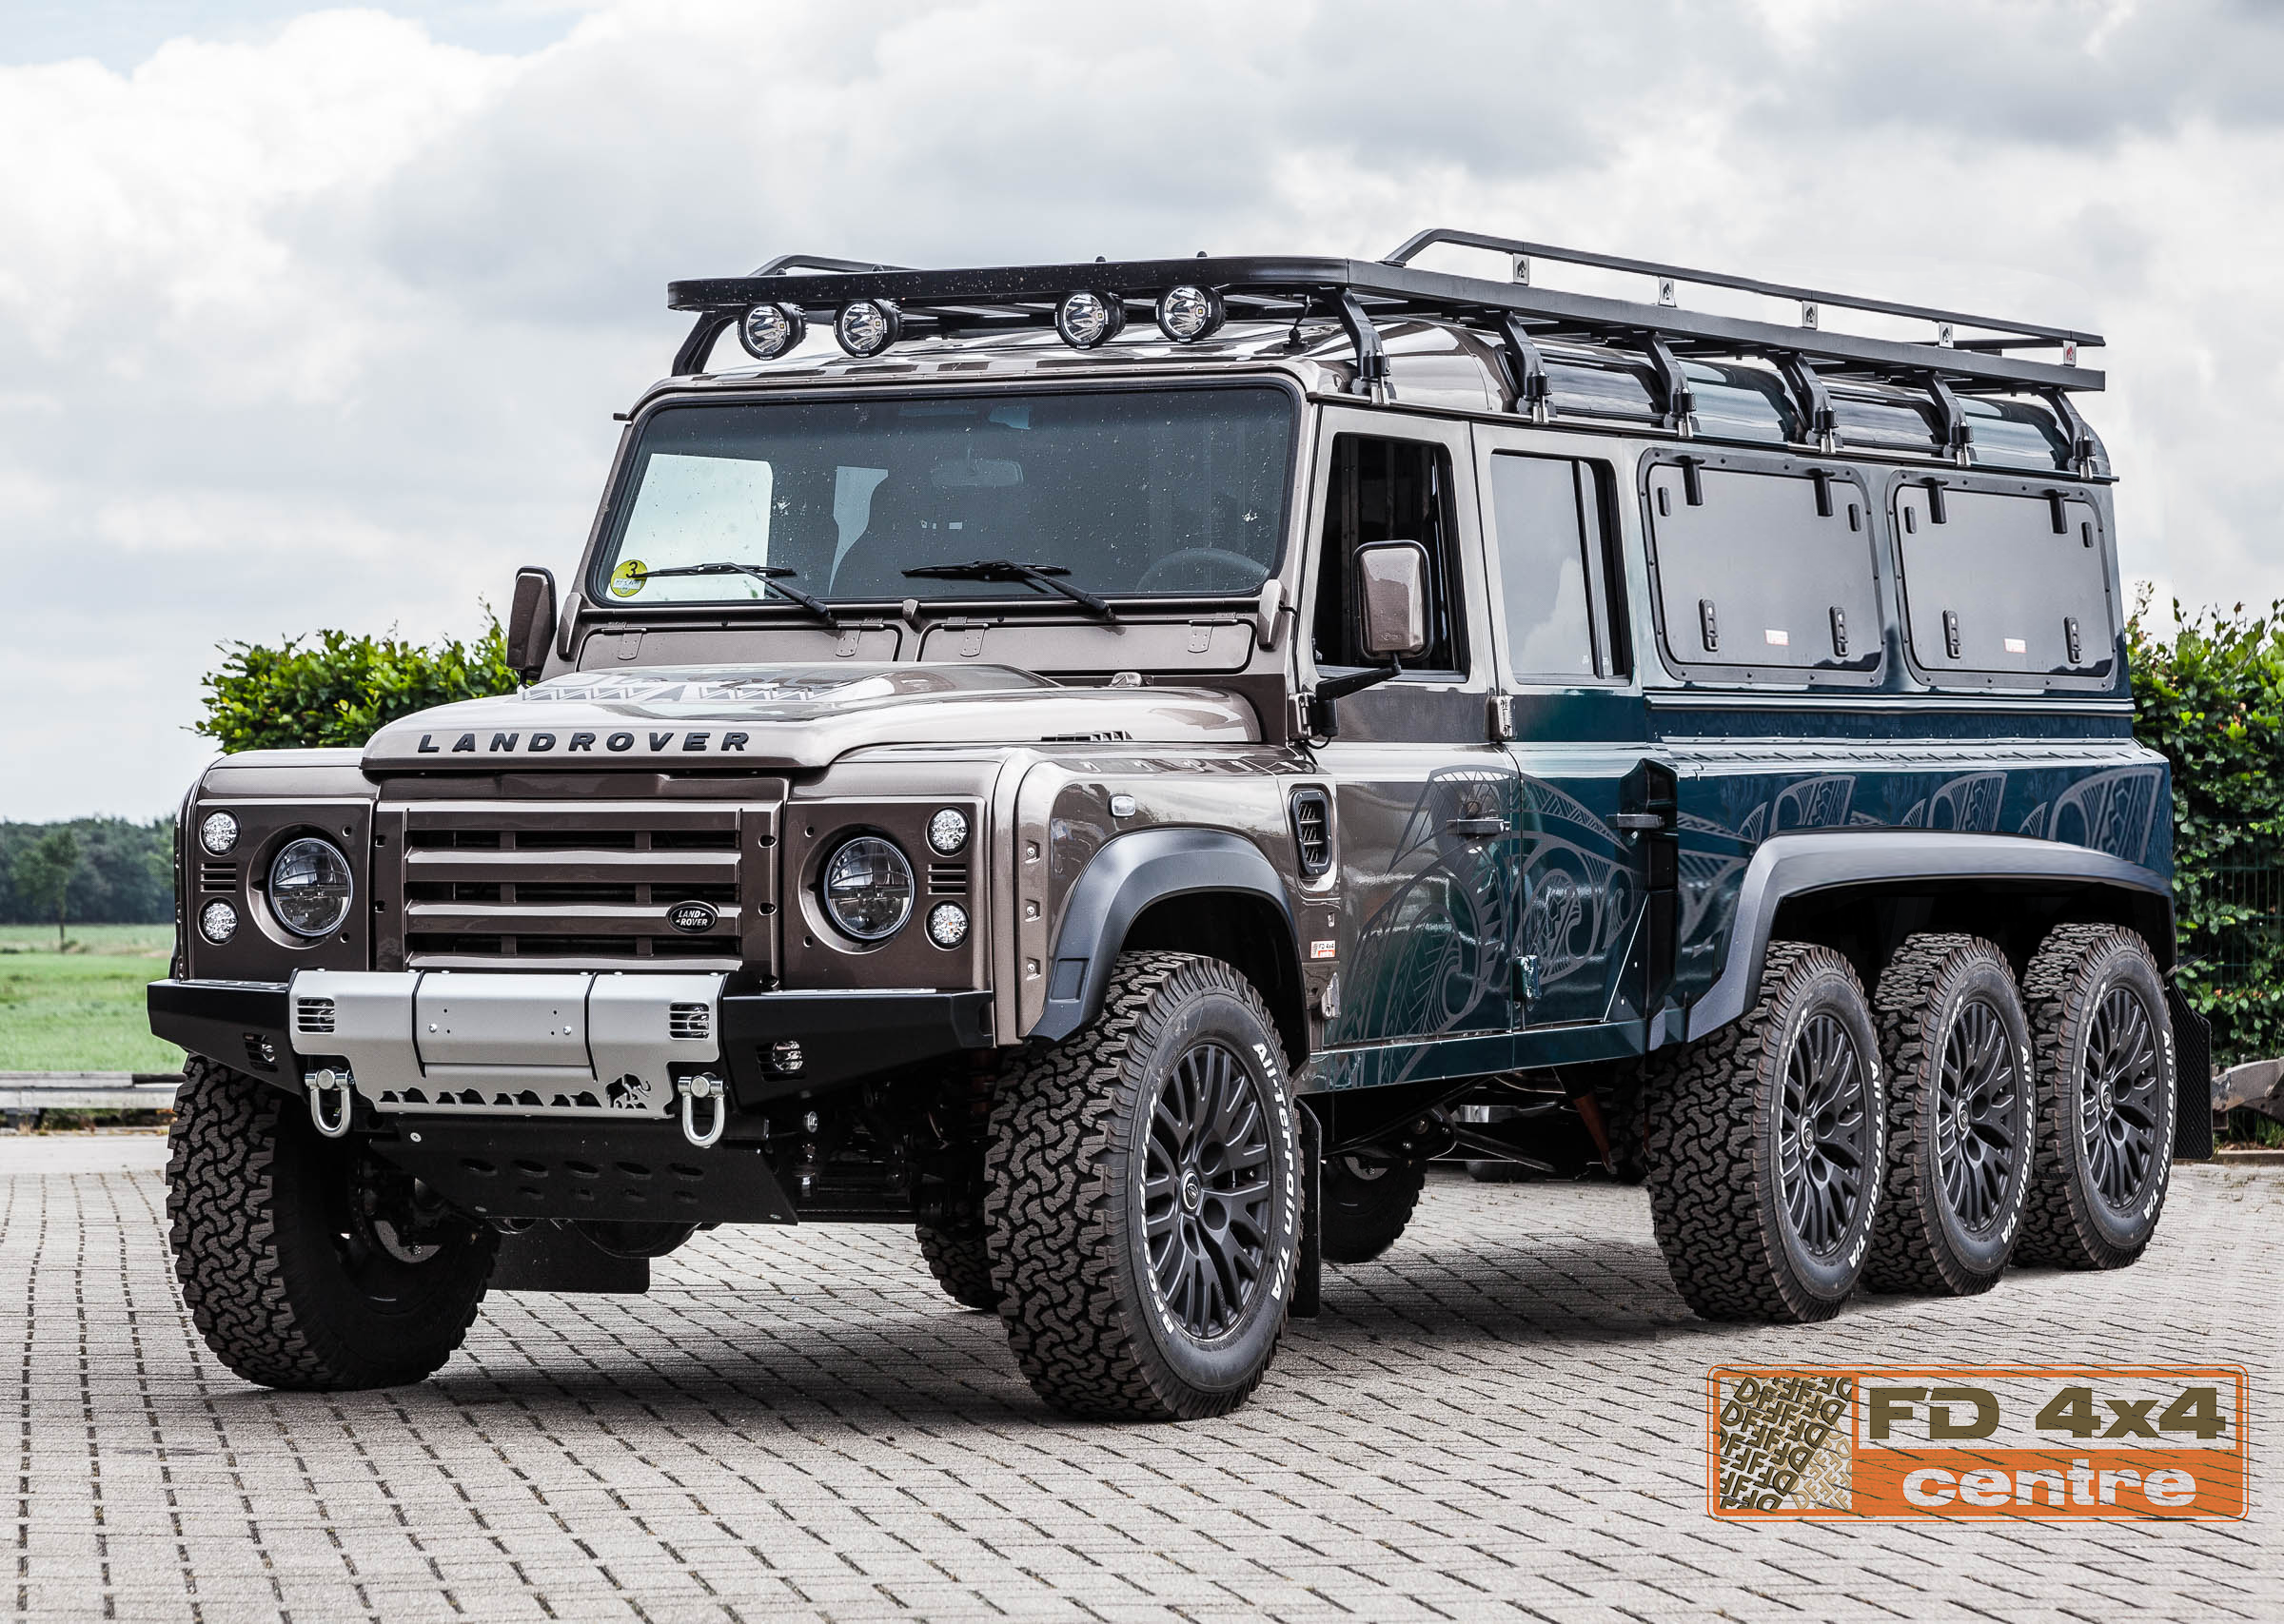 Land Rover Defender 8x8 By Fd 4x4 Centre With A Nice Roof